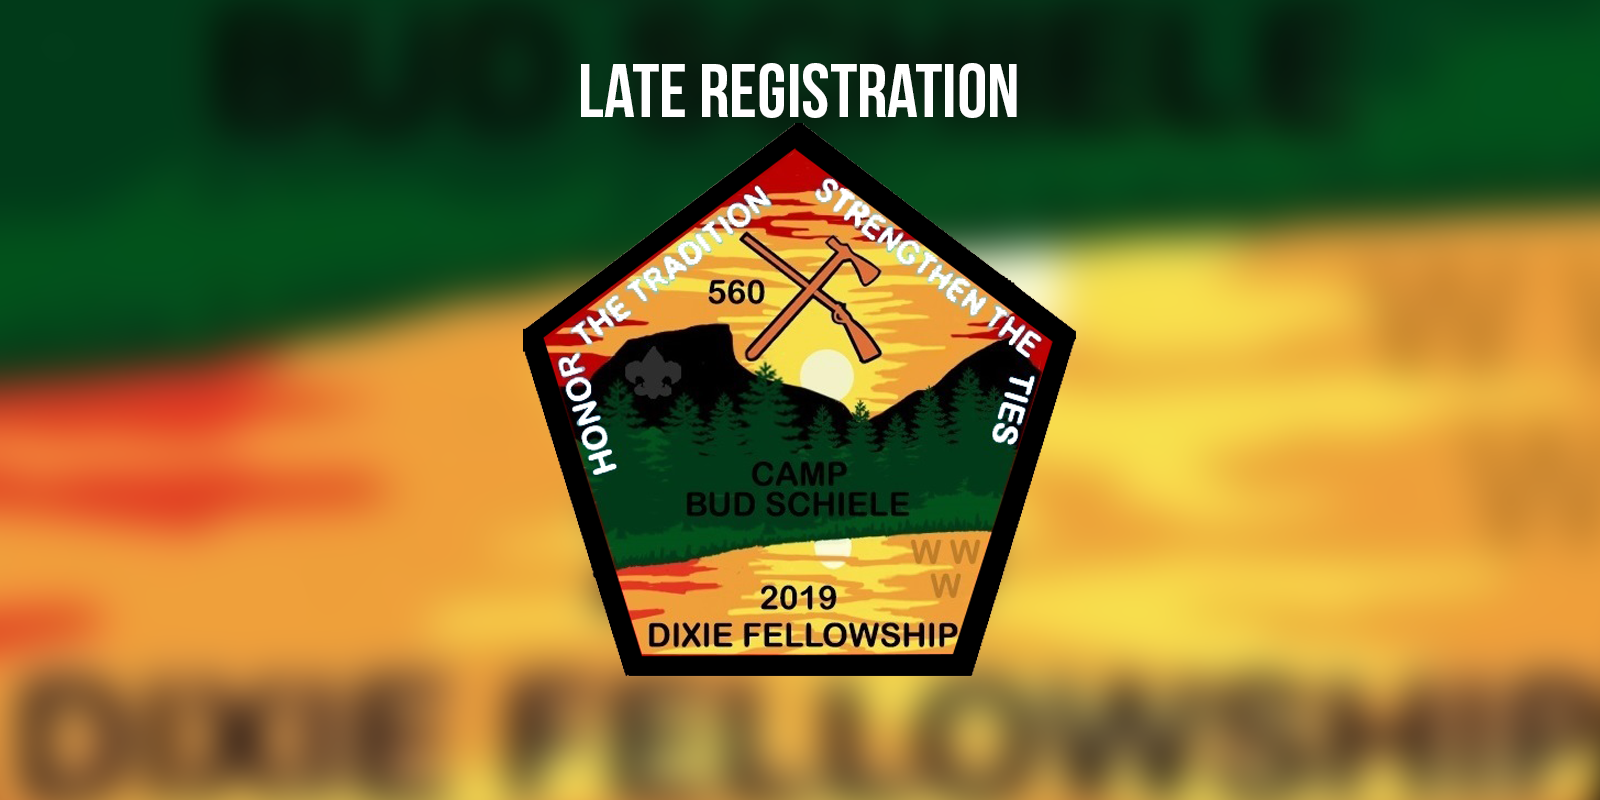 Late Registration for the 2019 Dixie Fellowship